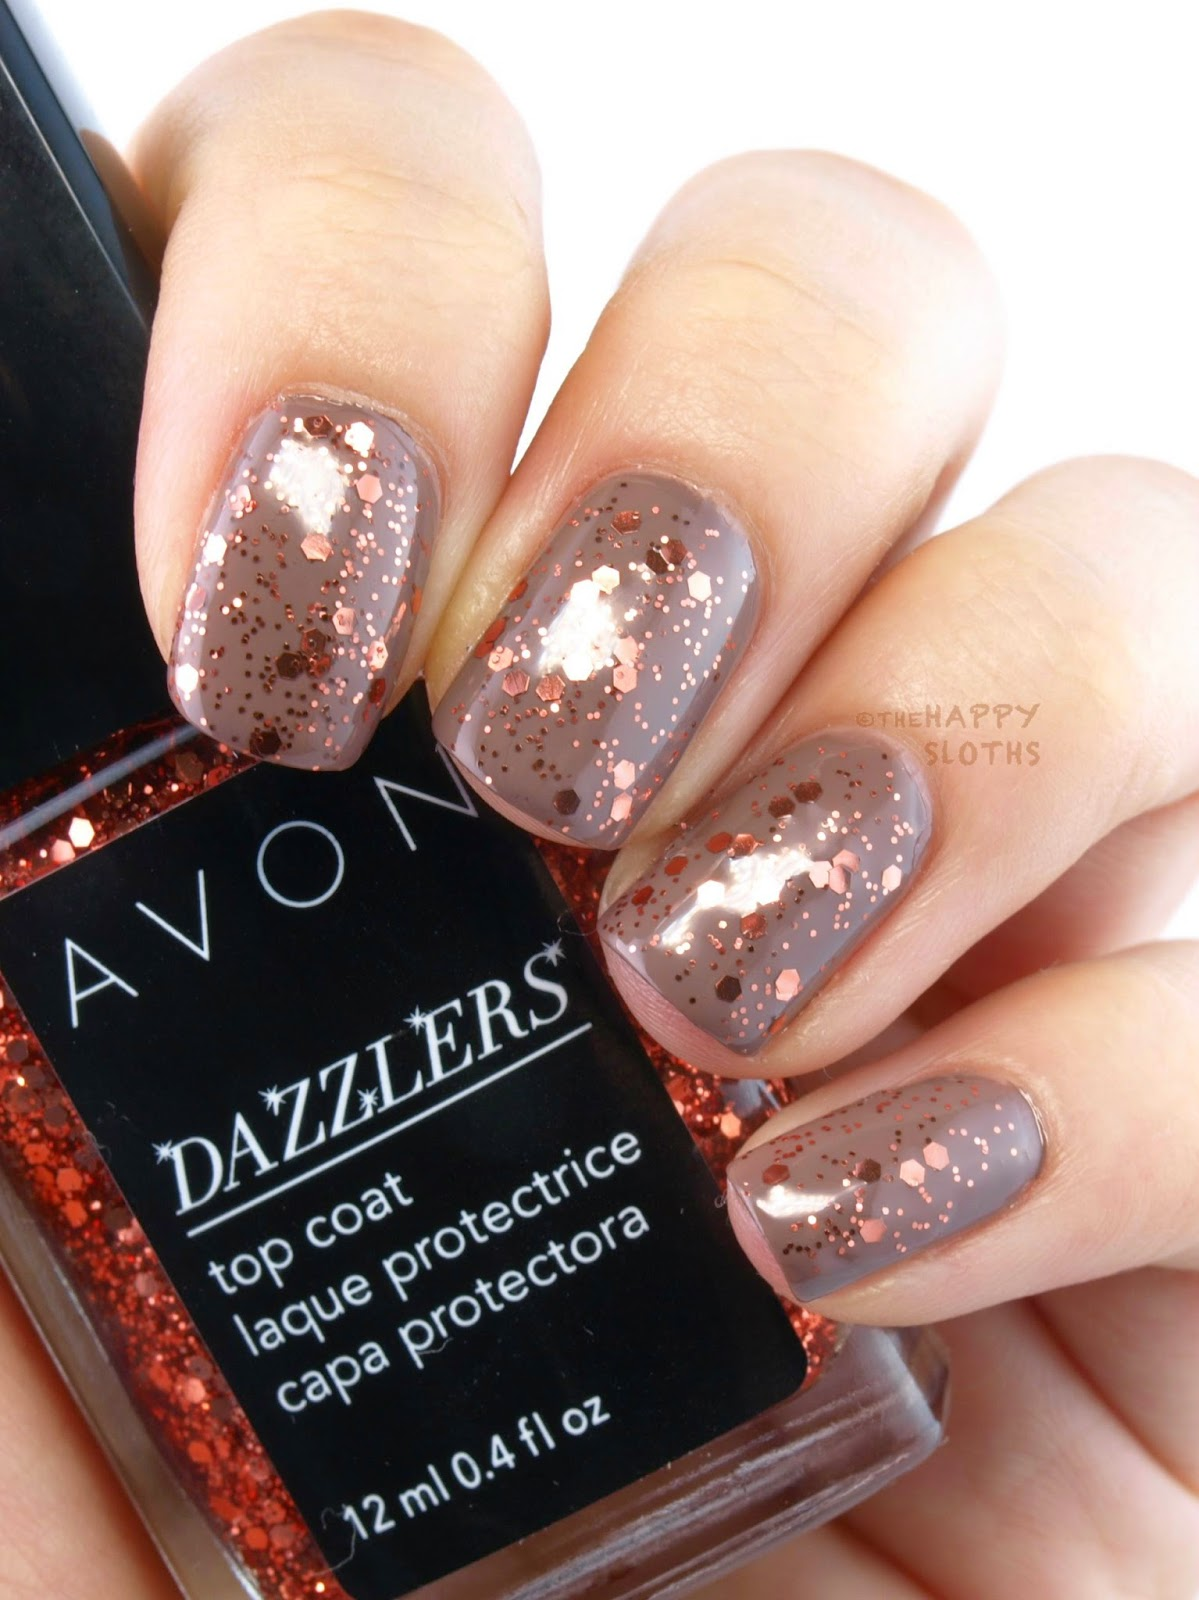 Avon Dazzlers Top Coat: Review and Swatches Va Va Violet